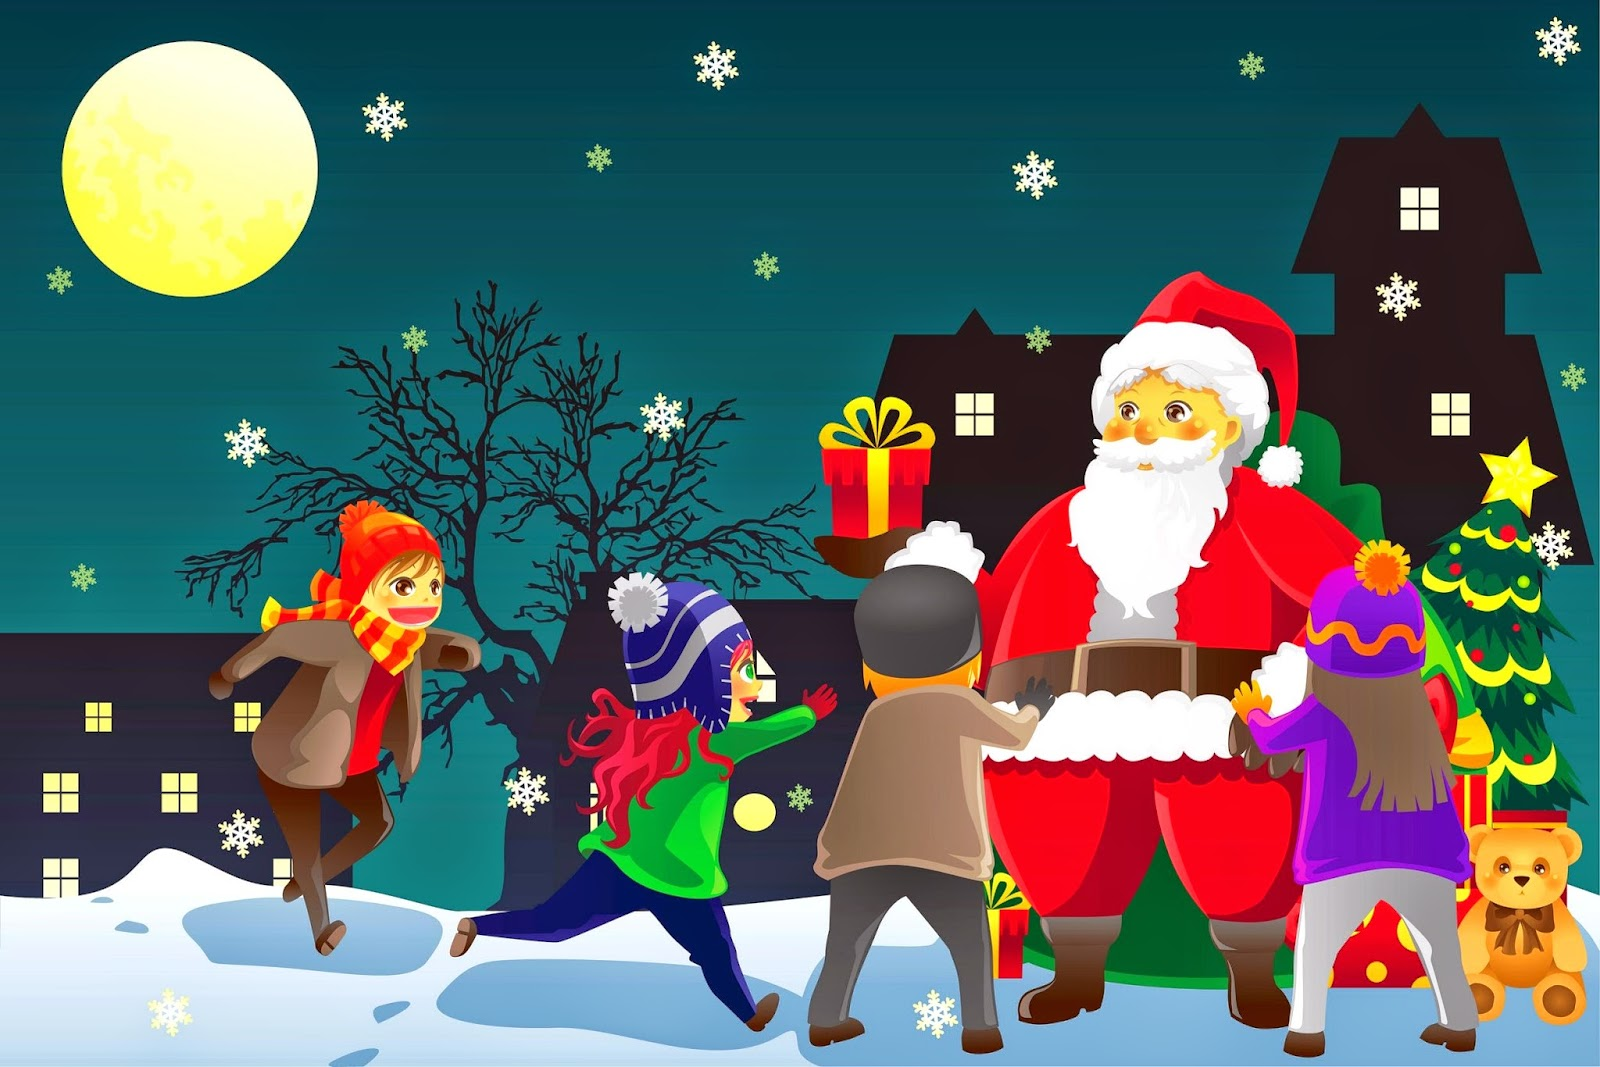 kids-play-with-santa-cartoon-image-picture.jpg